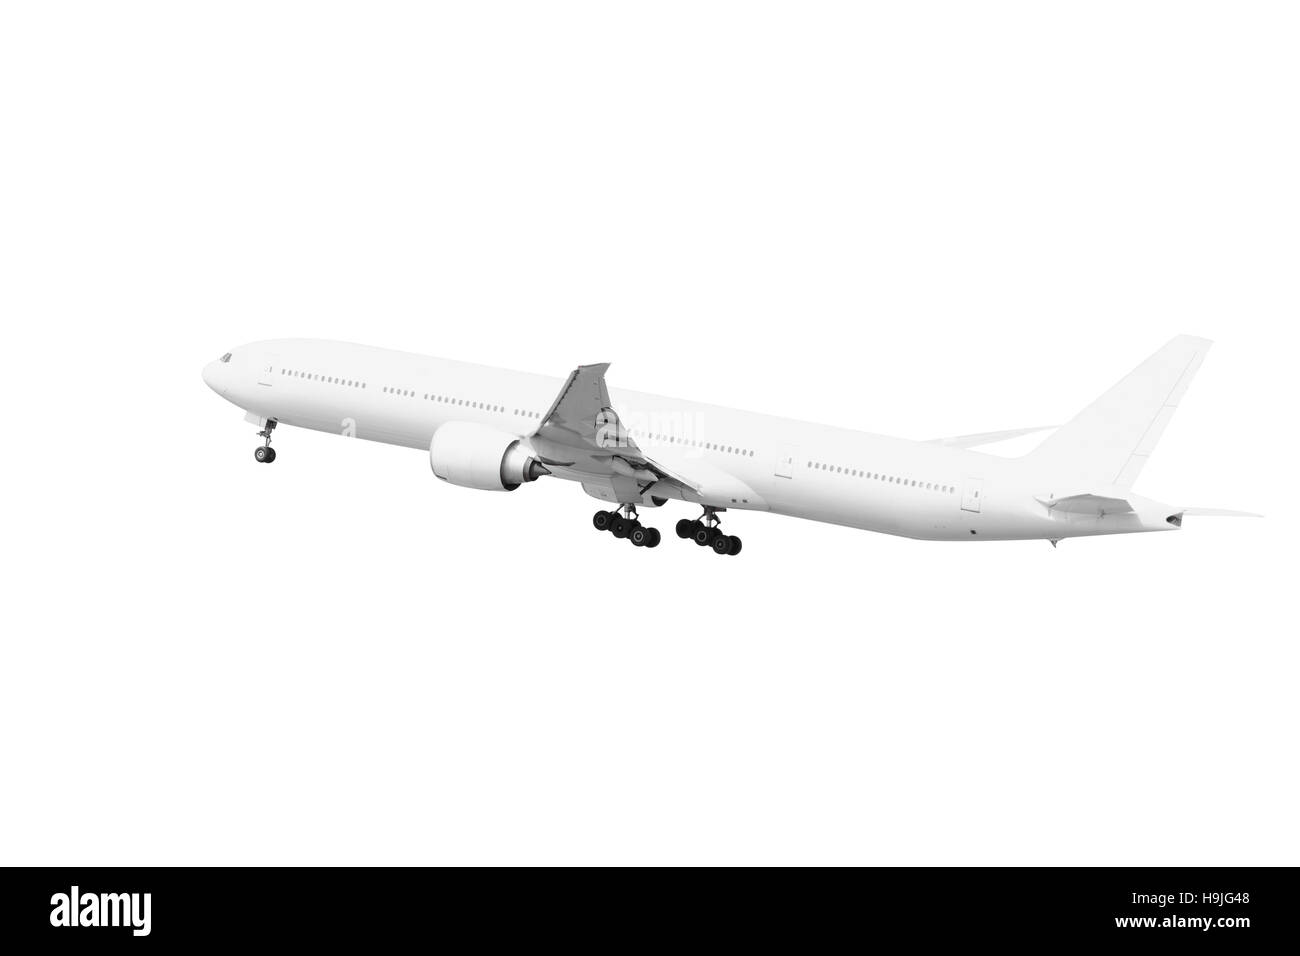 White Passenger aircraft taking off isolated on white background with clipping path - Stock Image